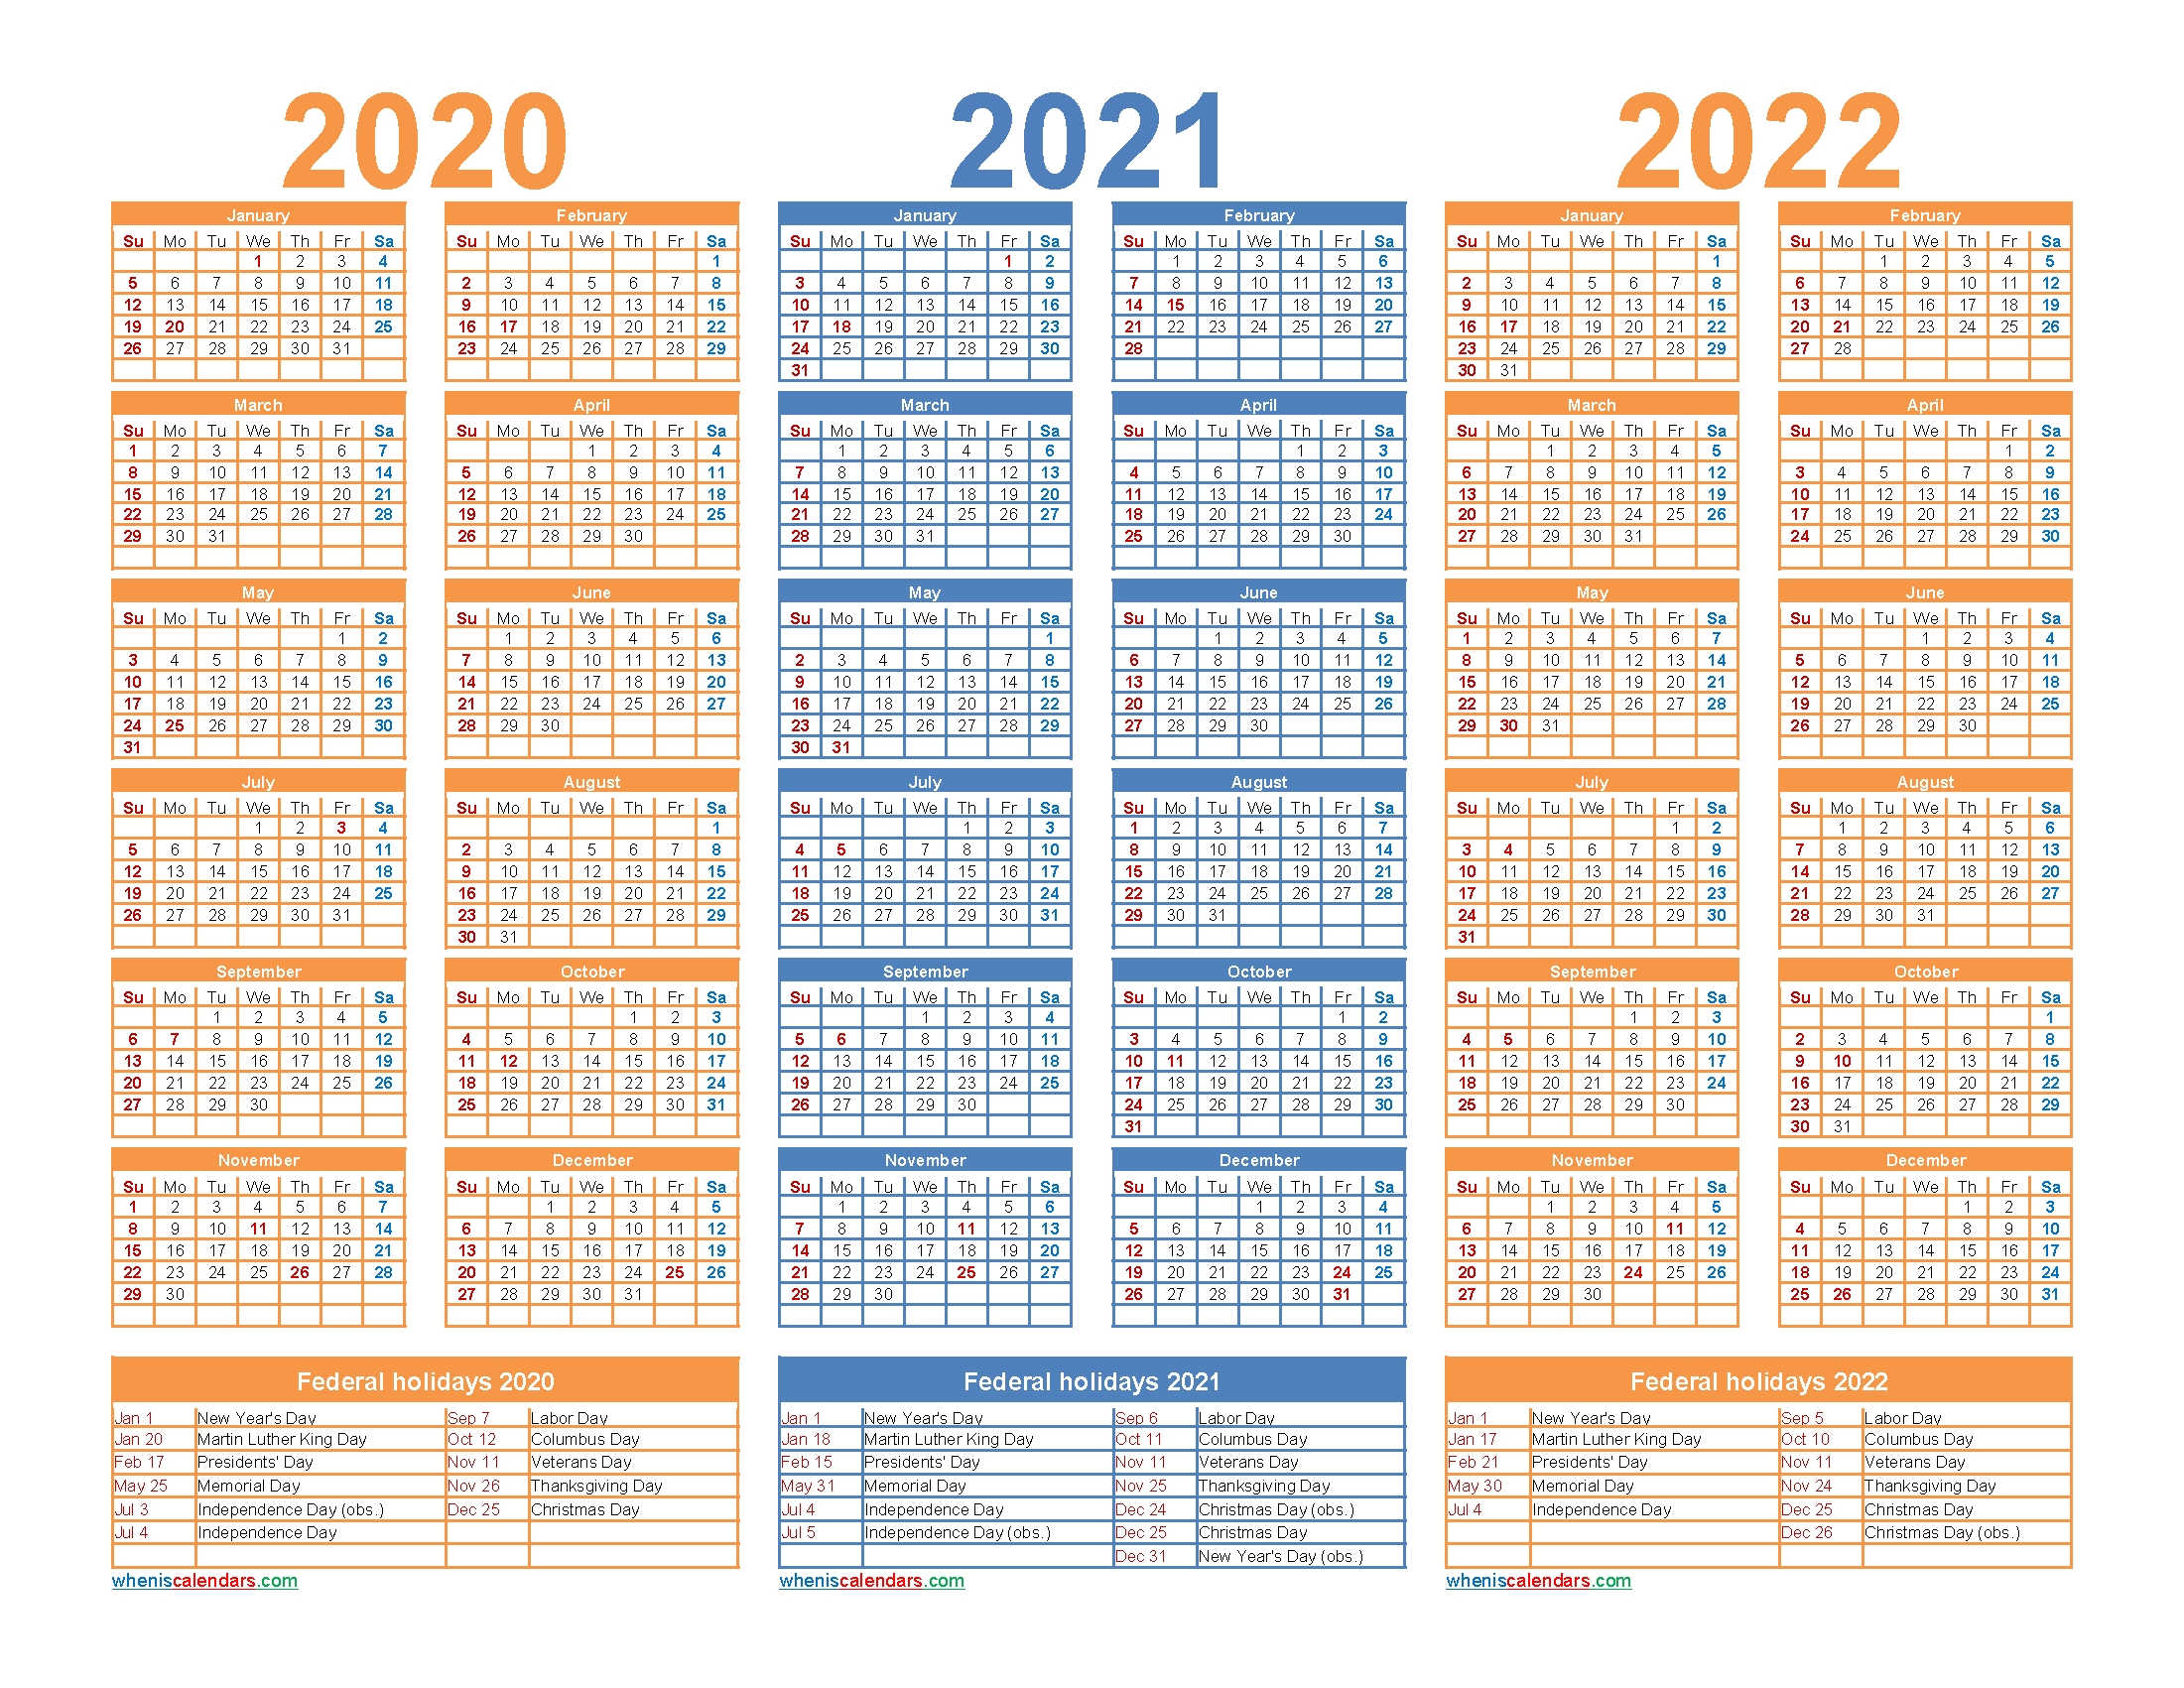 3 Year Calendar 2020 To 2022 Printable | Free Printable 2020 in 2020 2021 2022 2023 Calendar Printable One Page